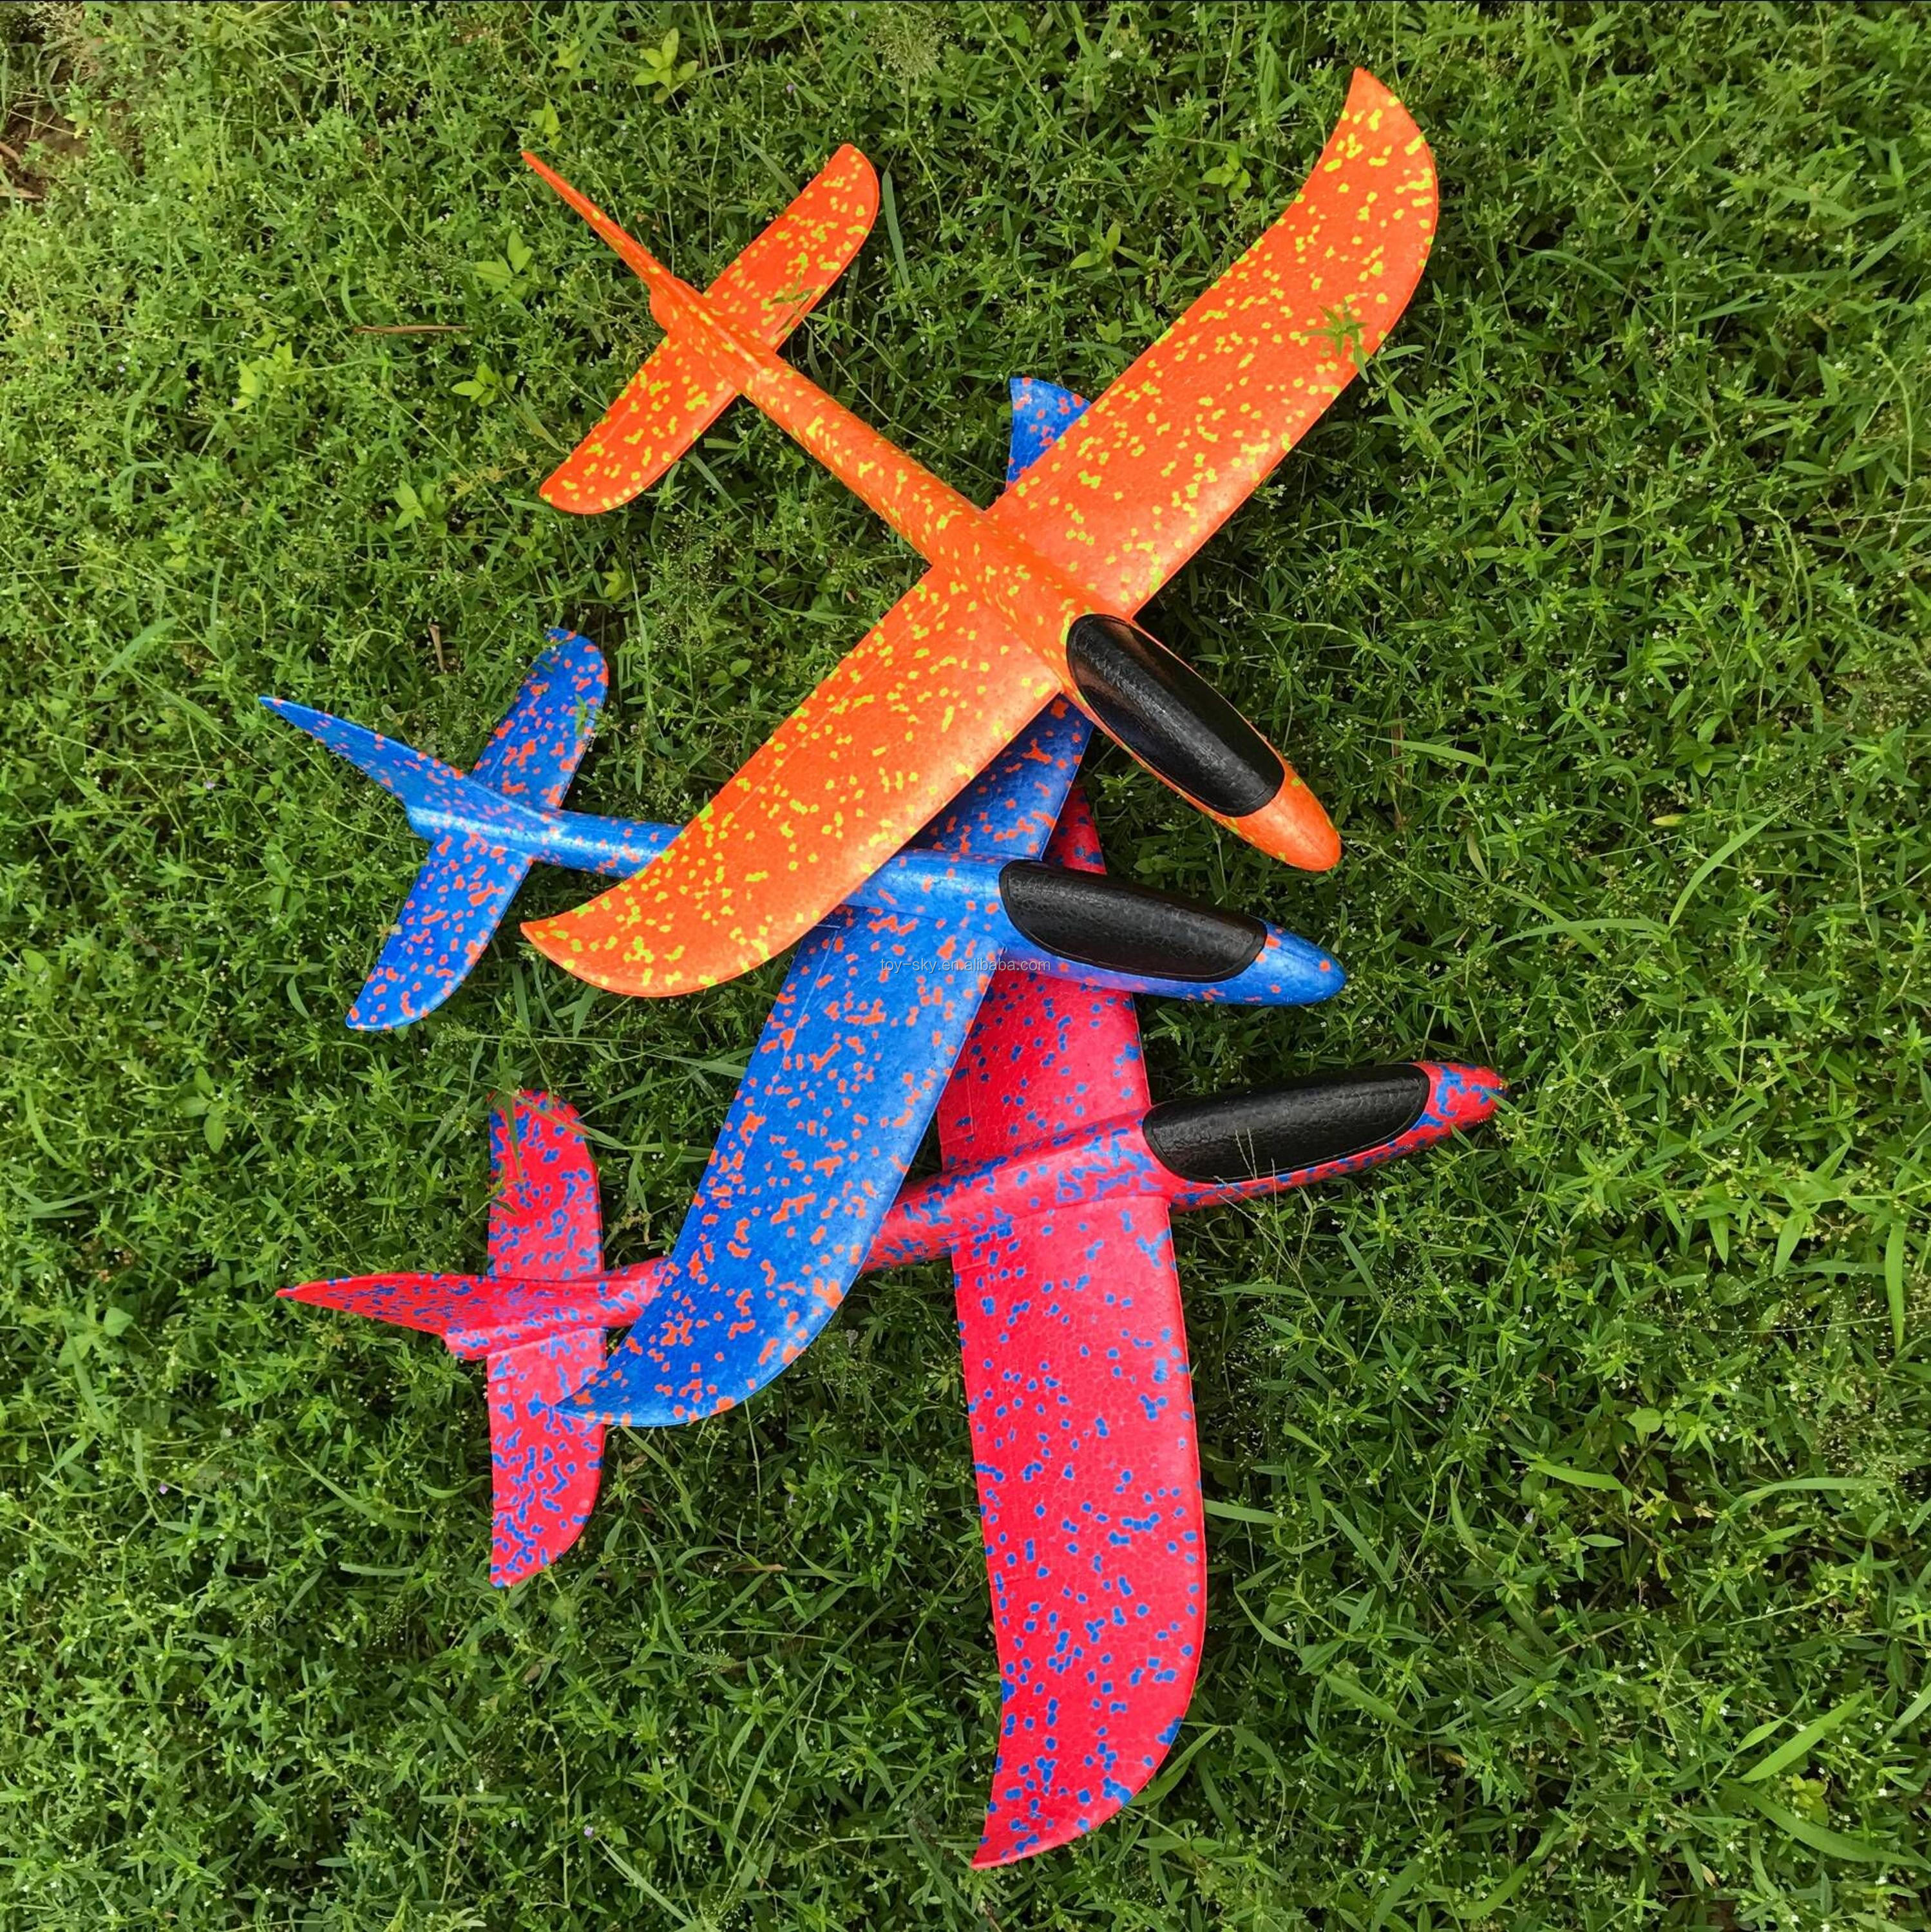 New Flying Toys For Kids Hand Launch Glider Airplane Model Epp